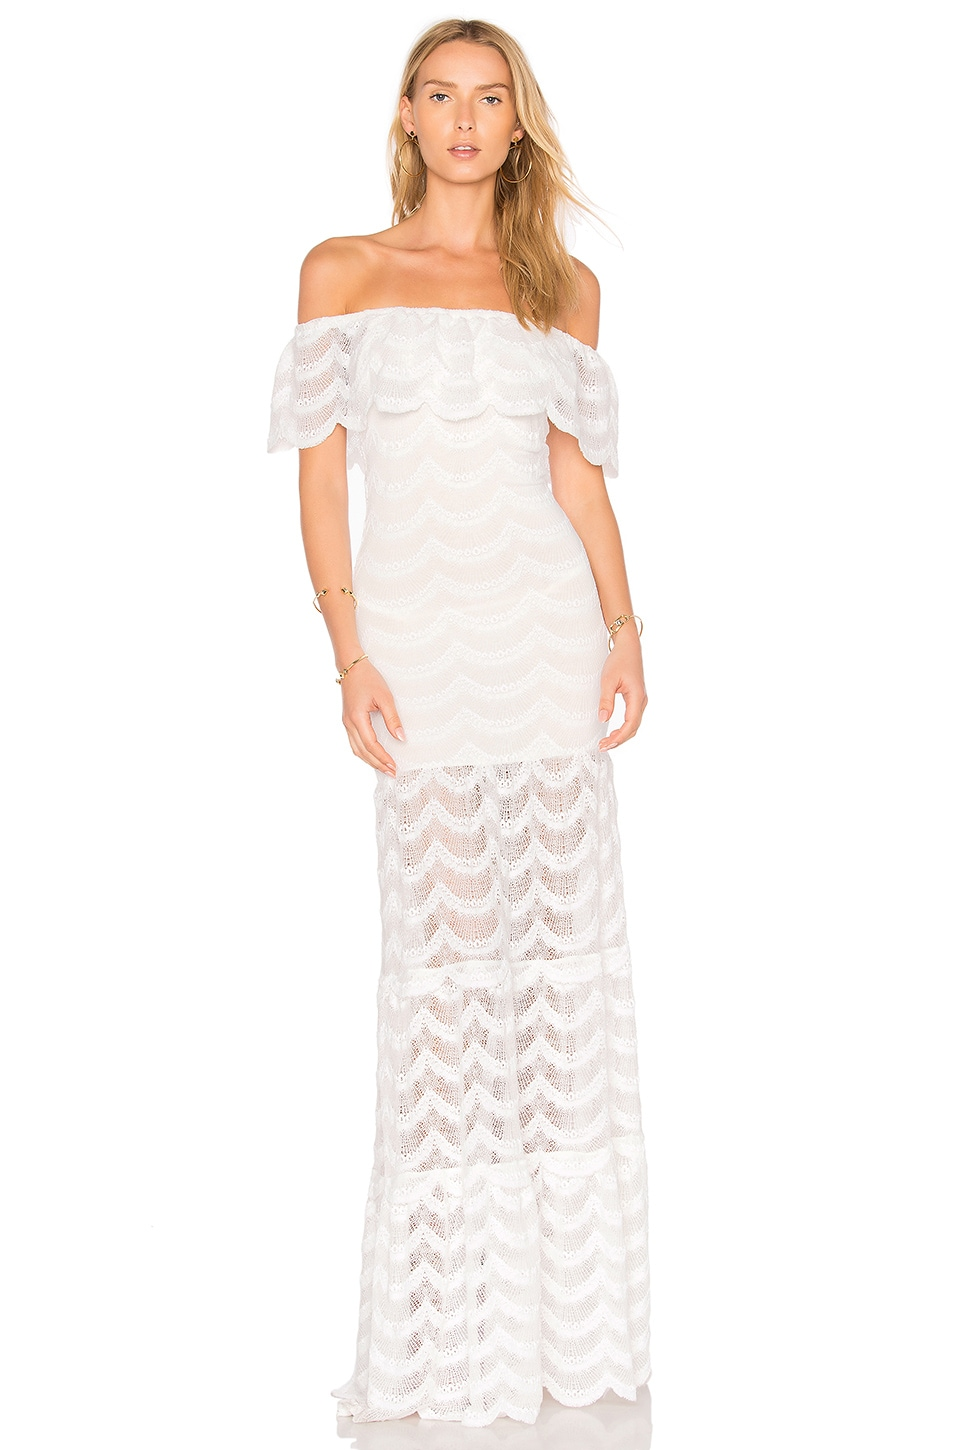 Nightcap Fiesta Positano Maxi Dress in Dove